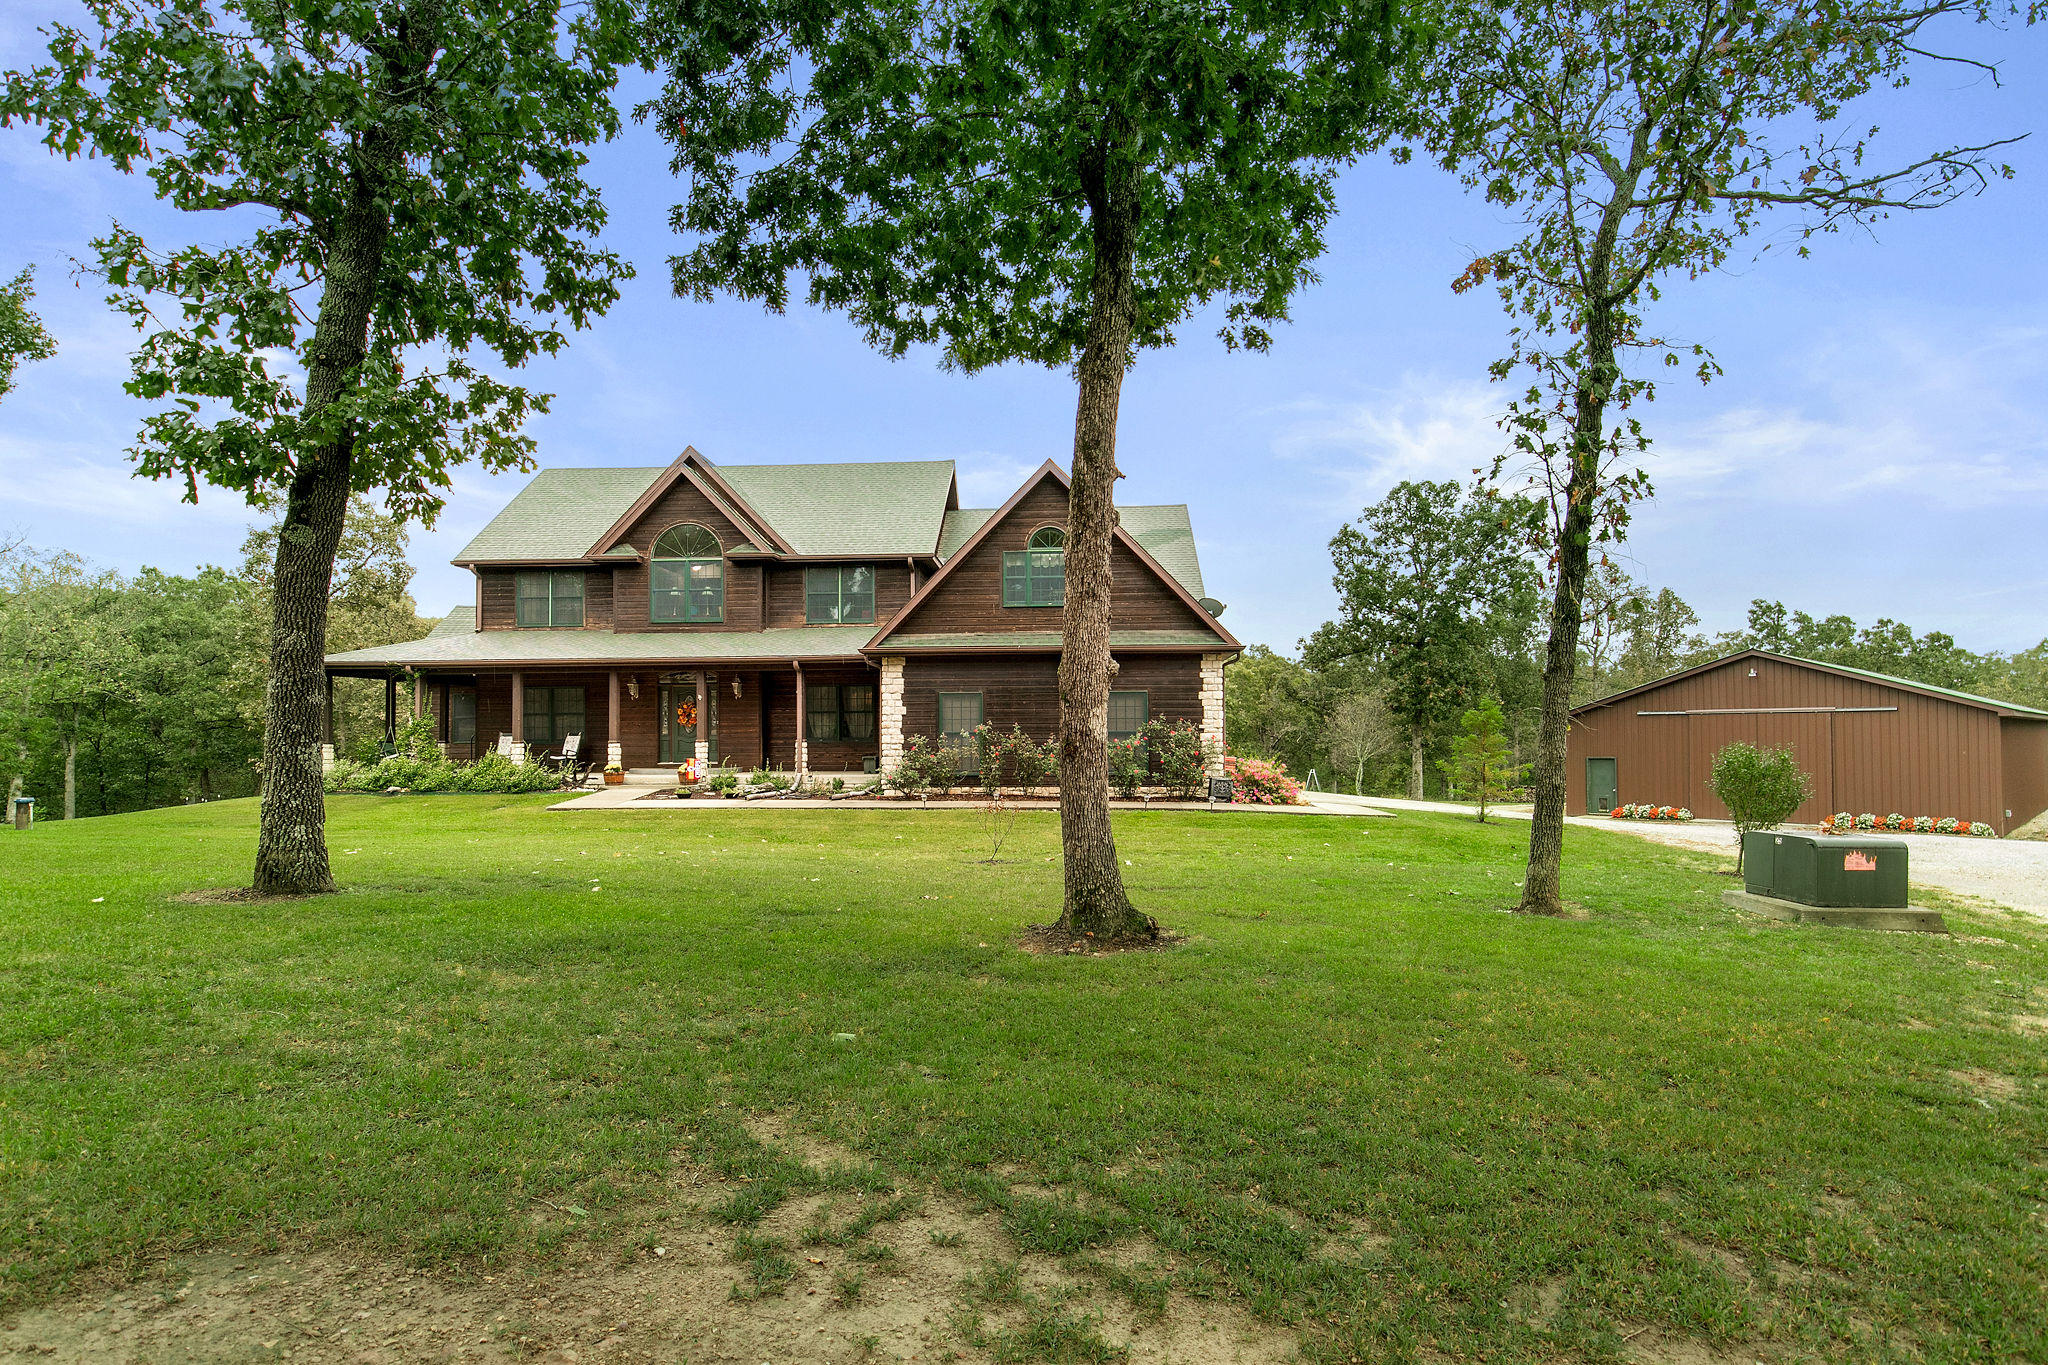 798 East Dade Greenfield, MO 65661